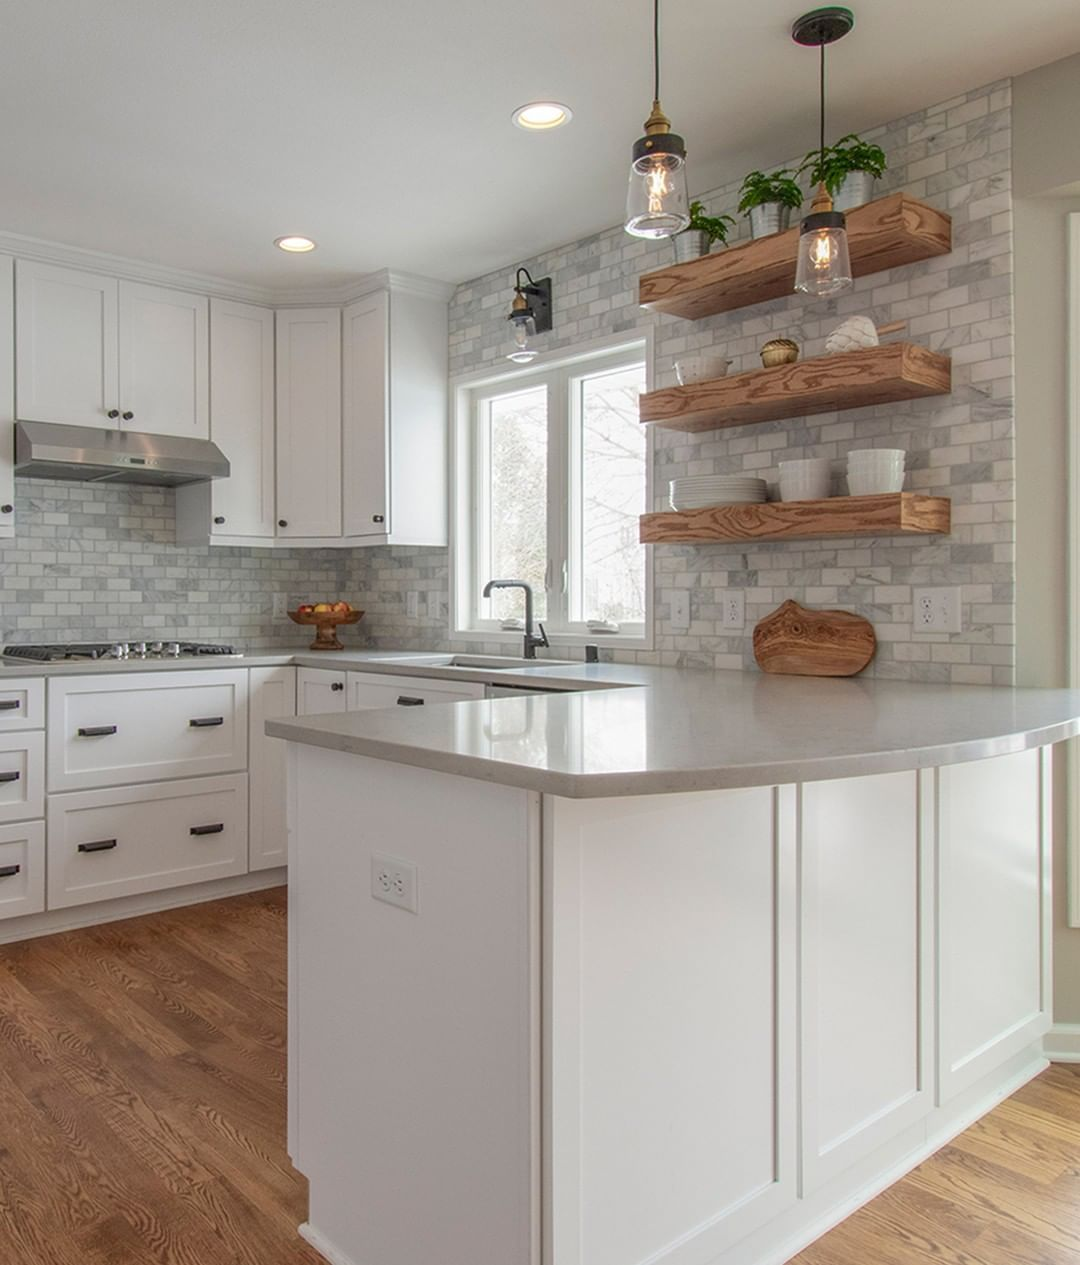 White Kitchen Cabinets Maintenance: Had You Told Us There Was A Kitchen Design That Was